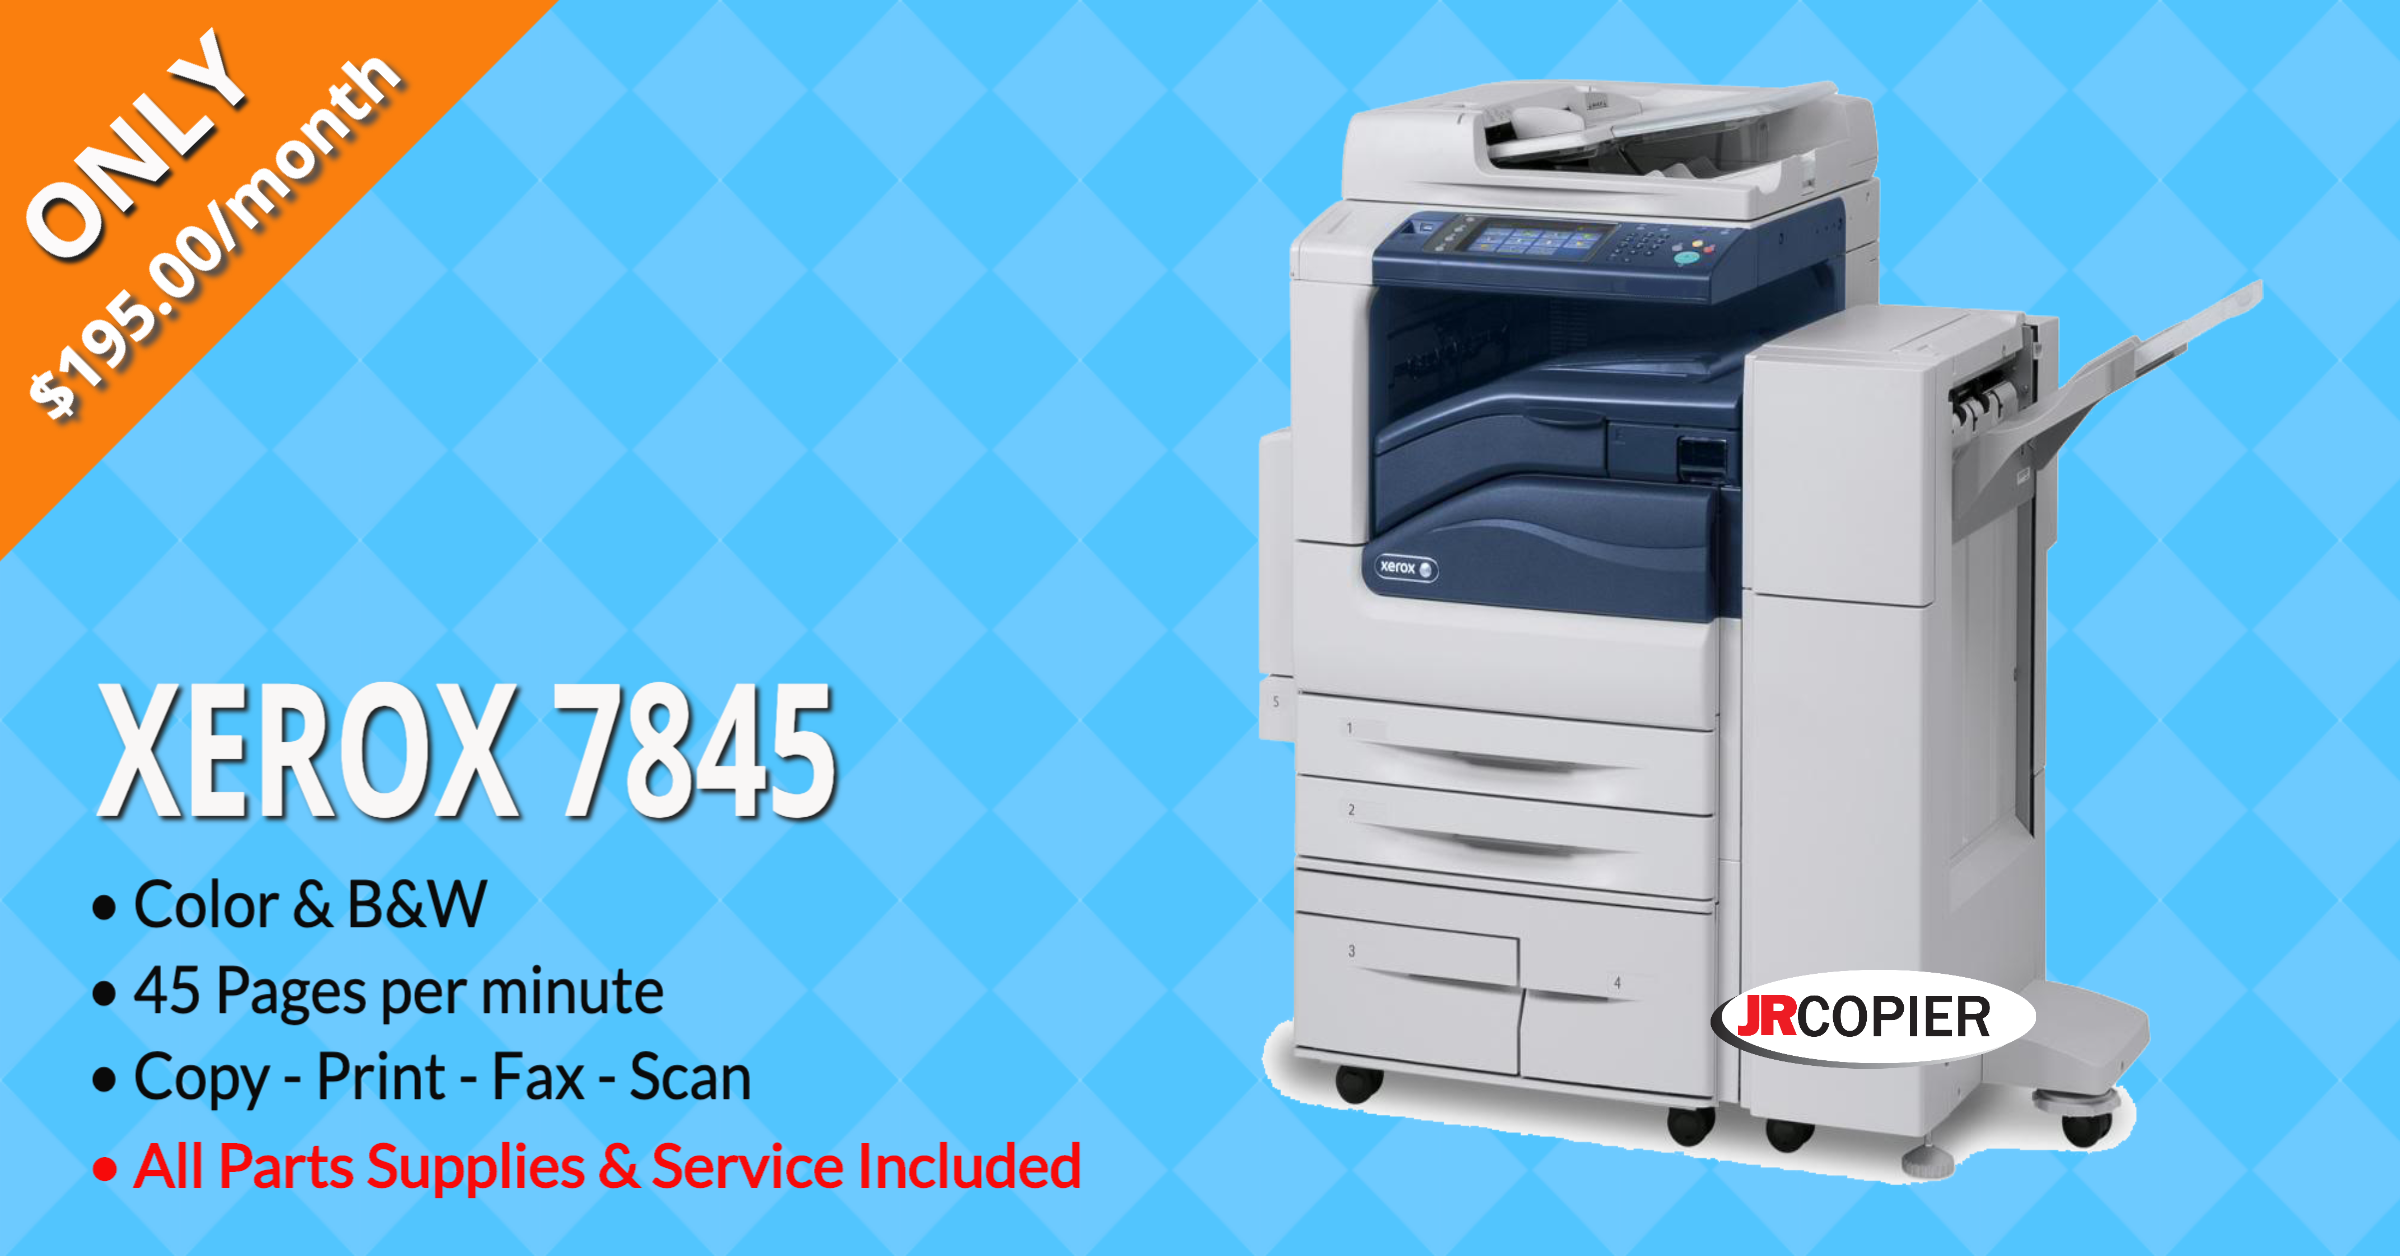 Printer Rental Services 72007, 72023